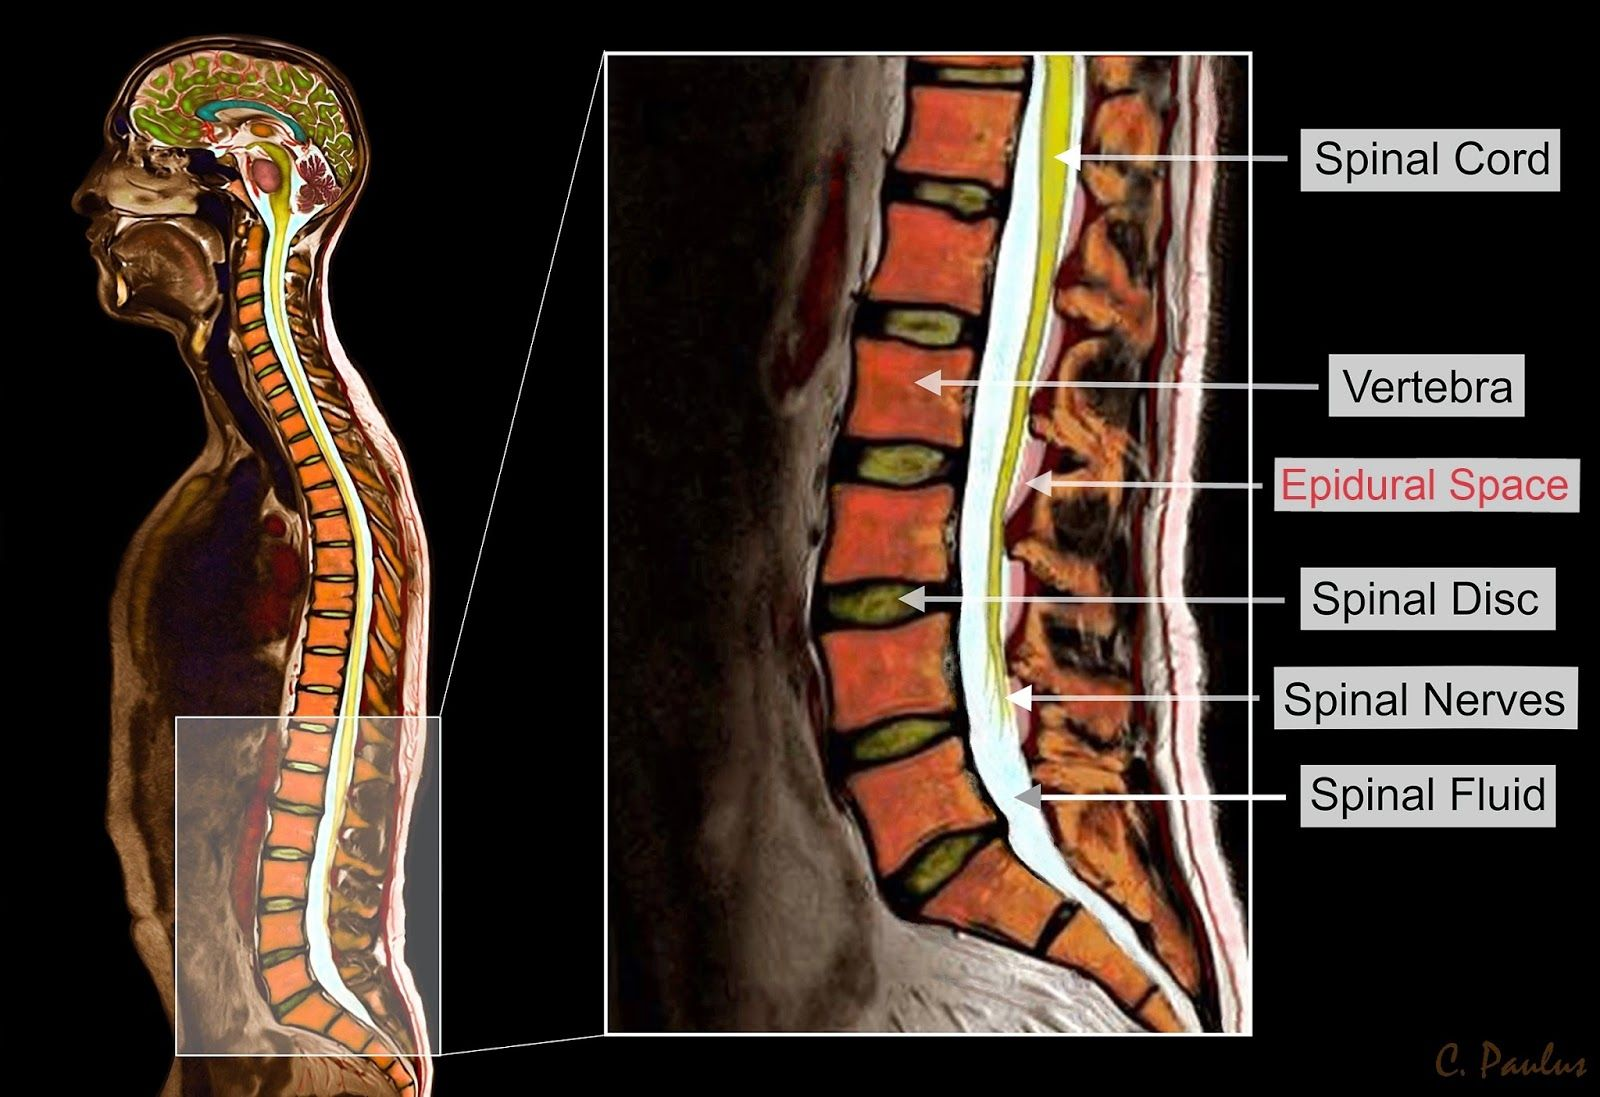 Color MRI Image Lumbar Spine Anatomy | Mri Scans | Pinterest ...